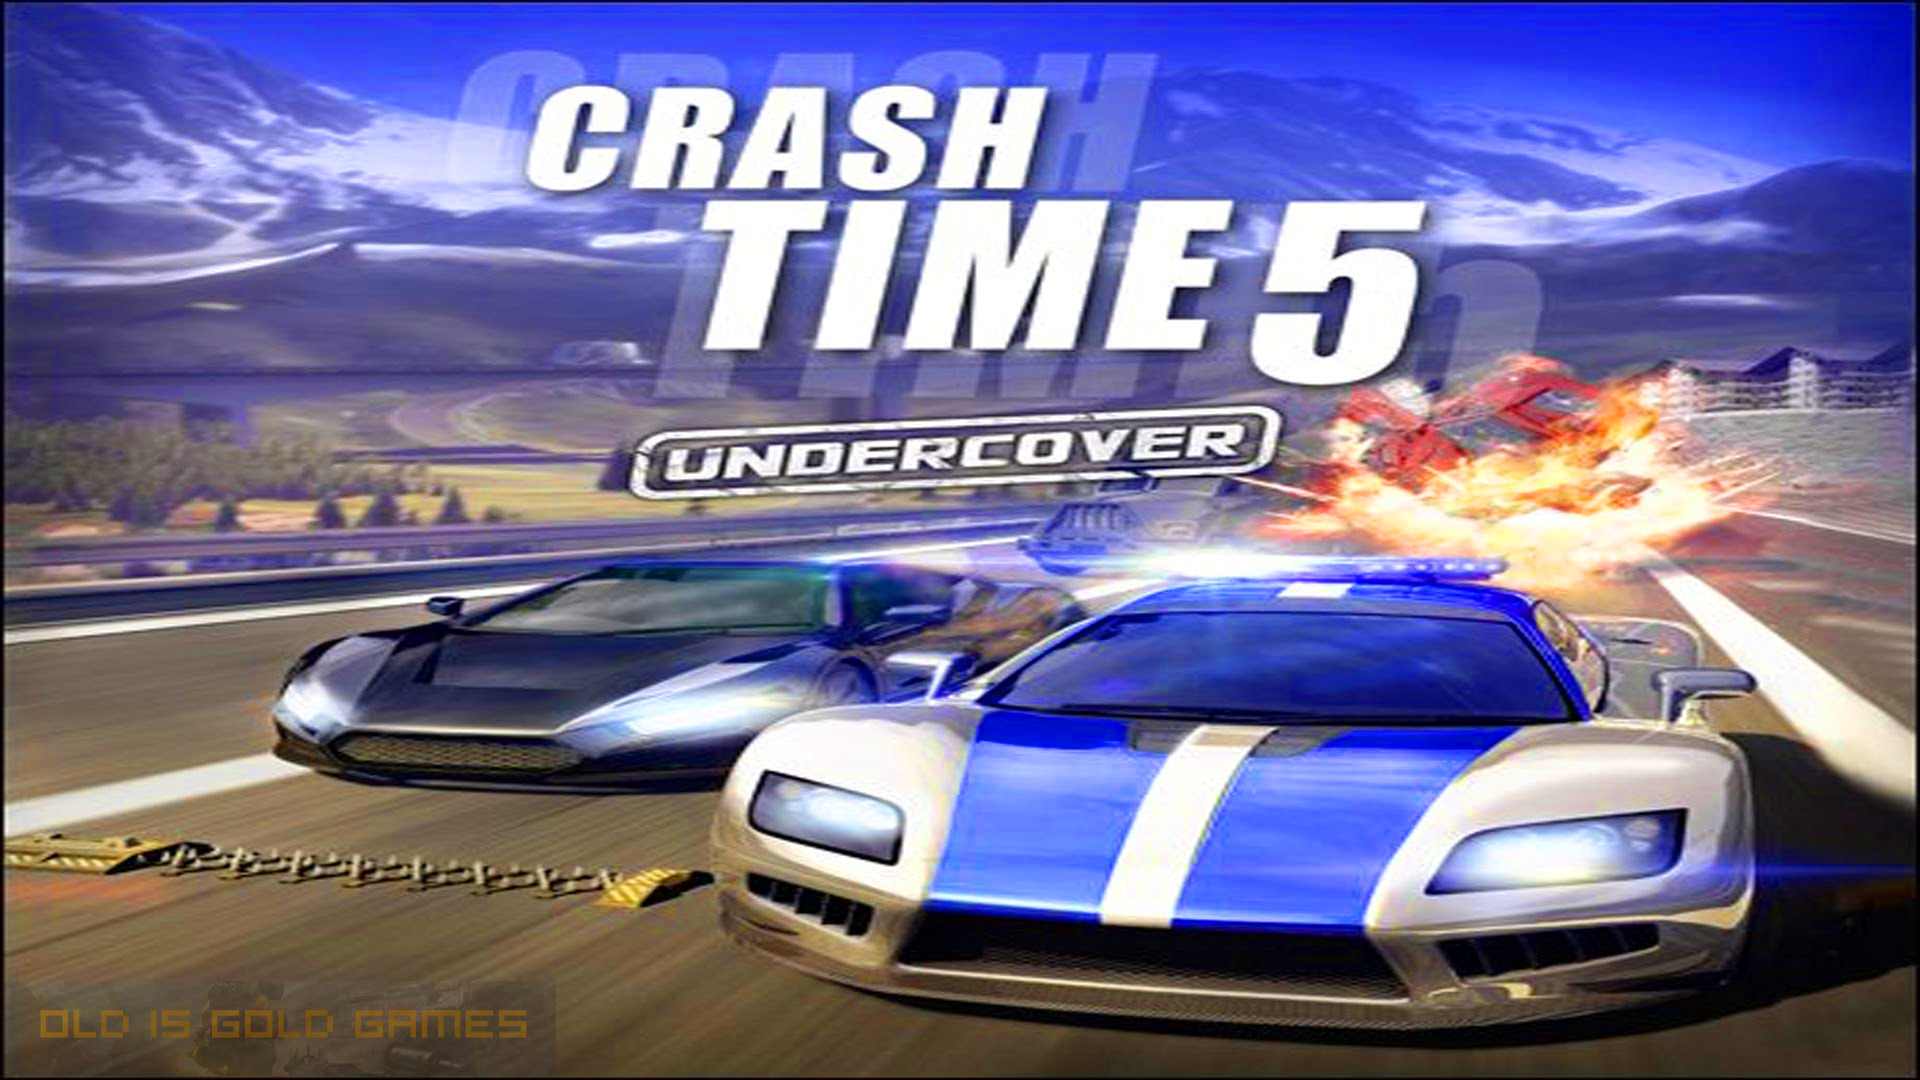 Crash Time 5 Undercover Free Download